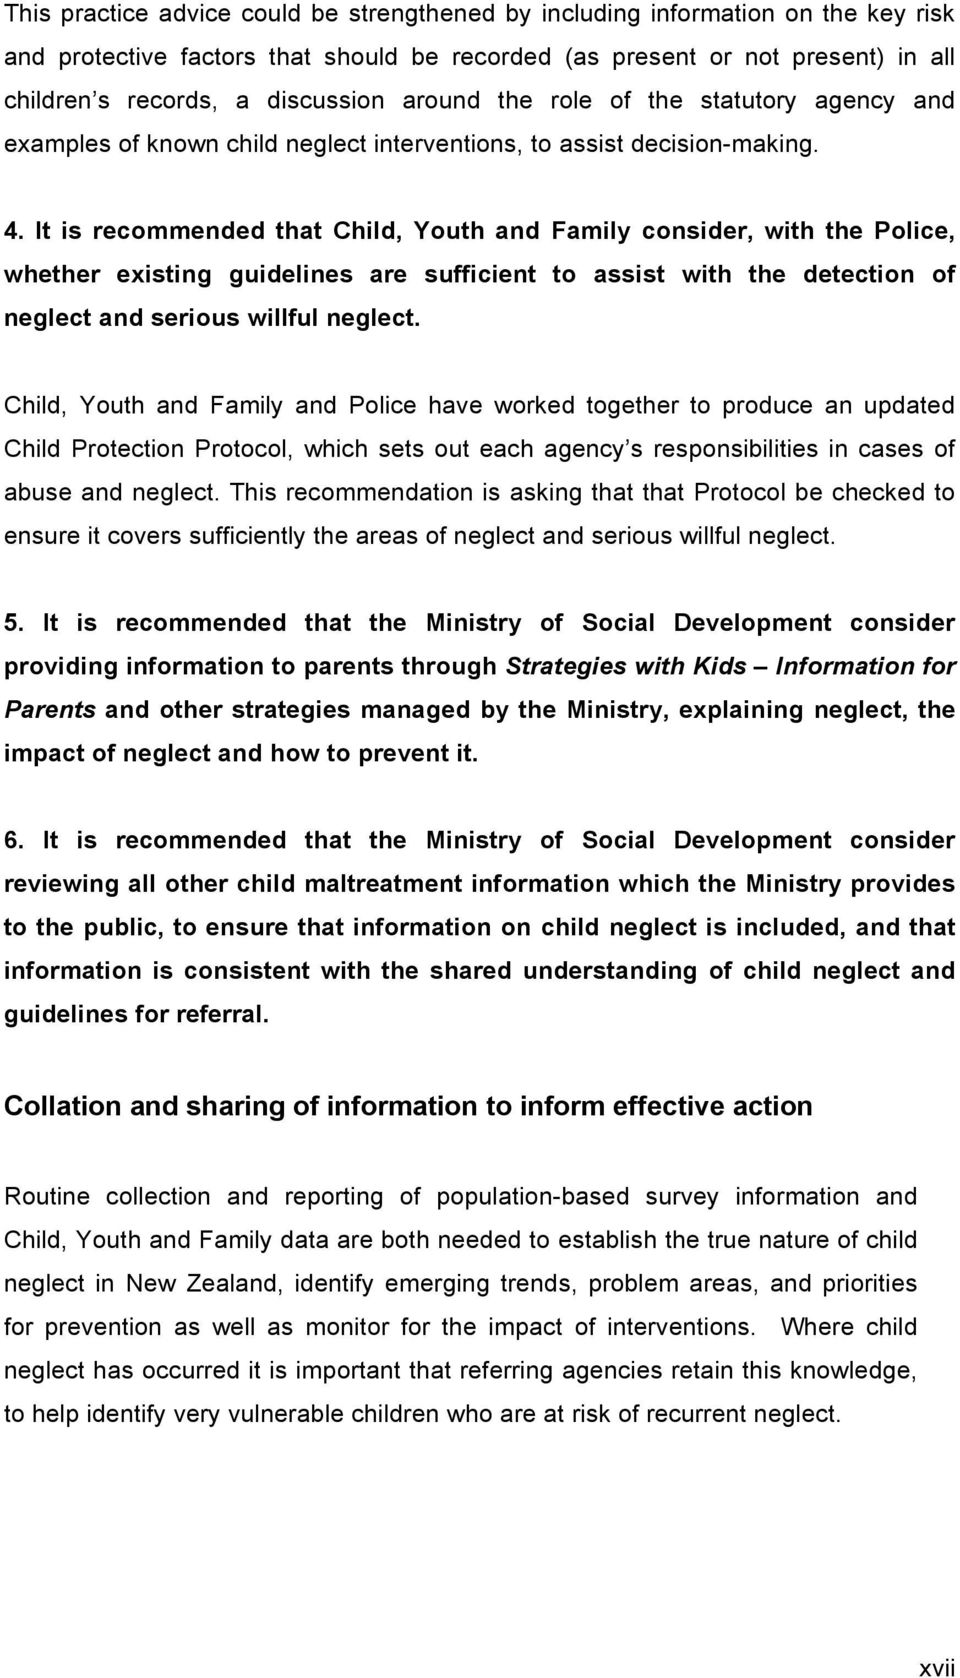 It is recommended that Child, Youth and Family consider, with the Police, whether existing guidelines are sufficient to assist with the detection of neglect and serious willful neglect.